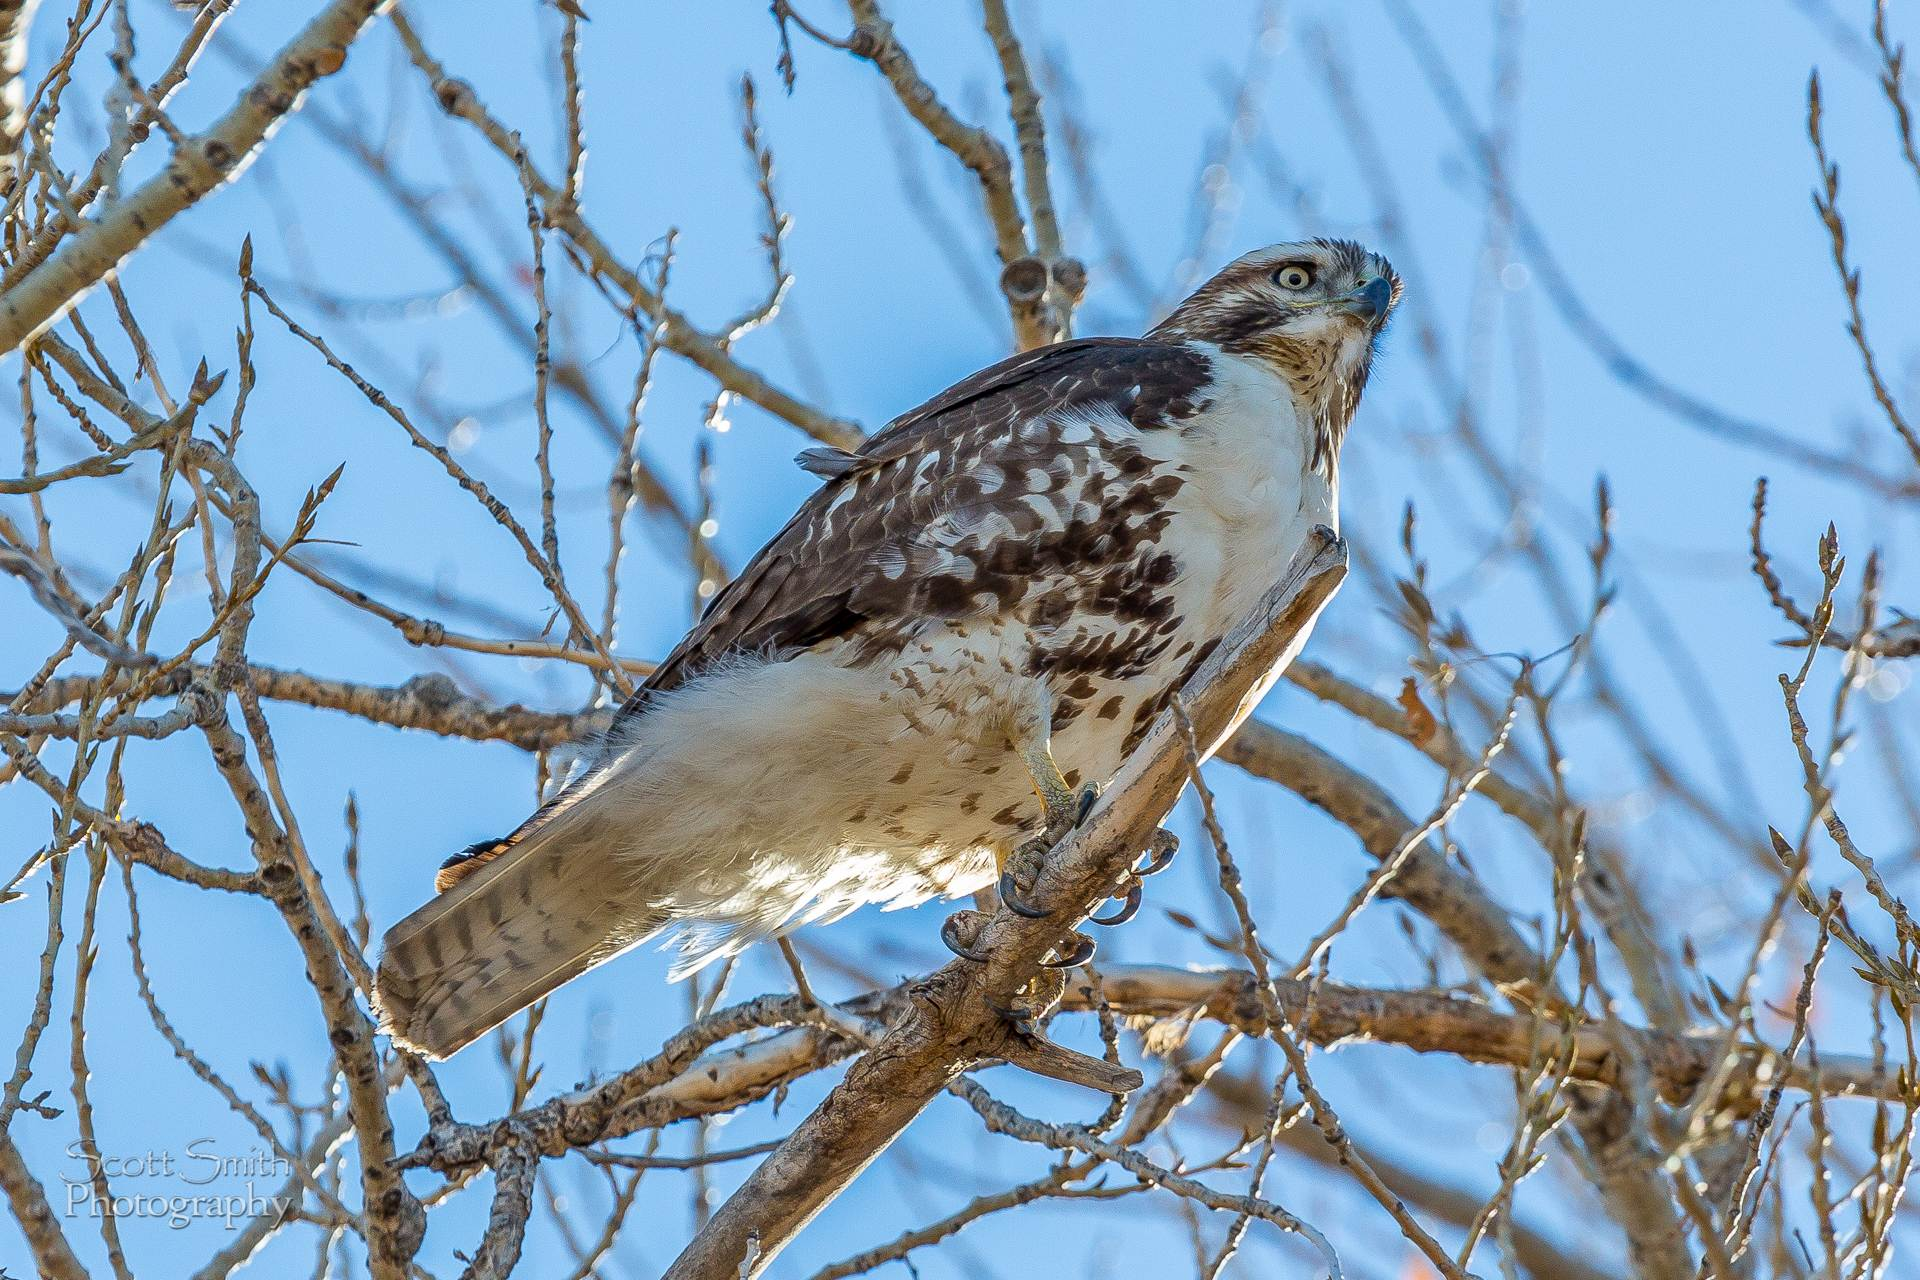 Swainson's Hawk 2 - A Swainson's Hawk enjoying the view at the Rocky Mountain Arsenal Wildlife Refuge. by D Scott Smith